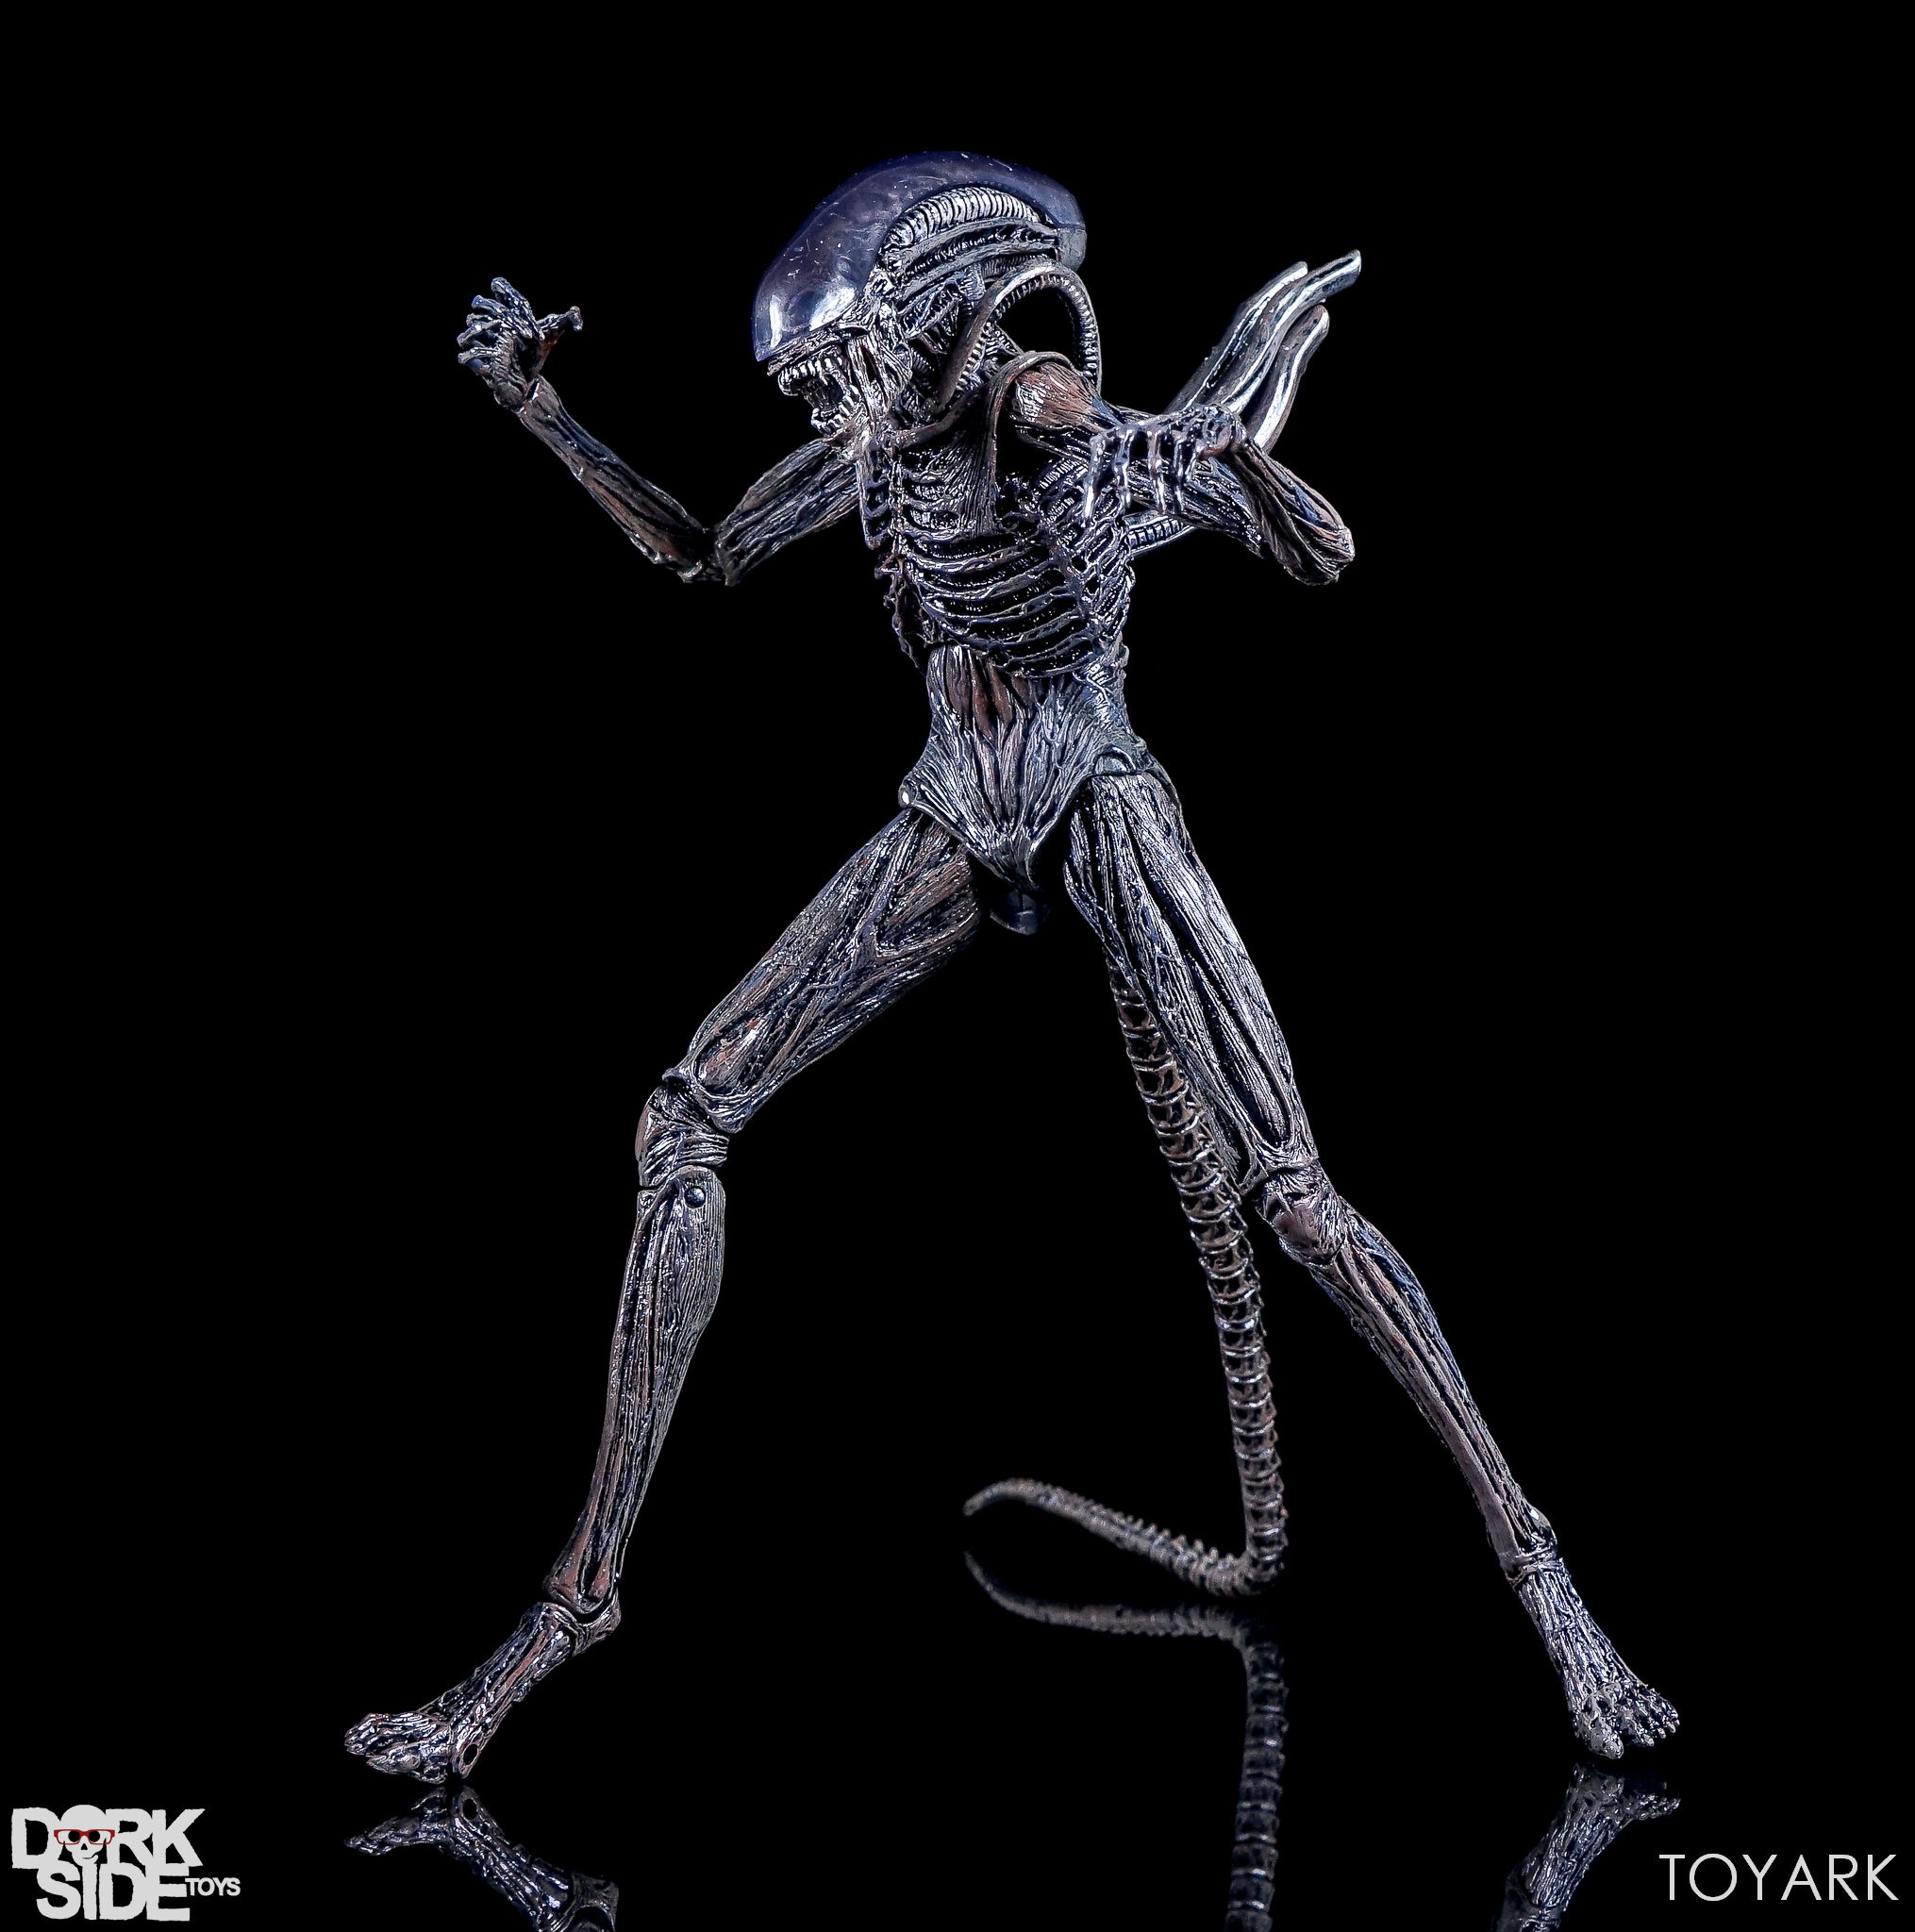 http://news.toyark.com/wp-content/uploads/sites/4/2017/08/NECA-Alien-Covenant-Figures-024.jpg